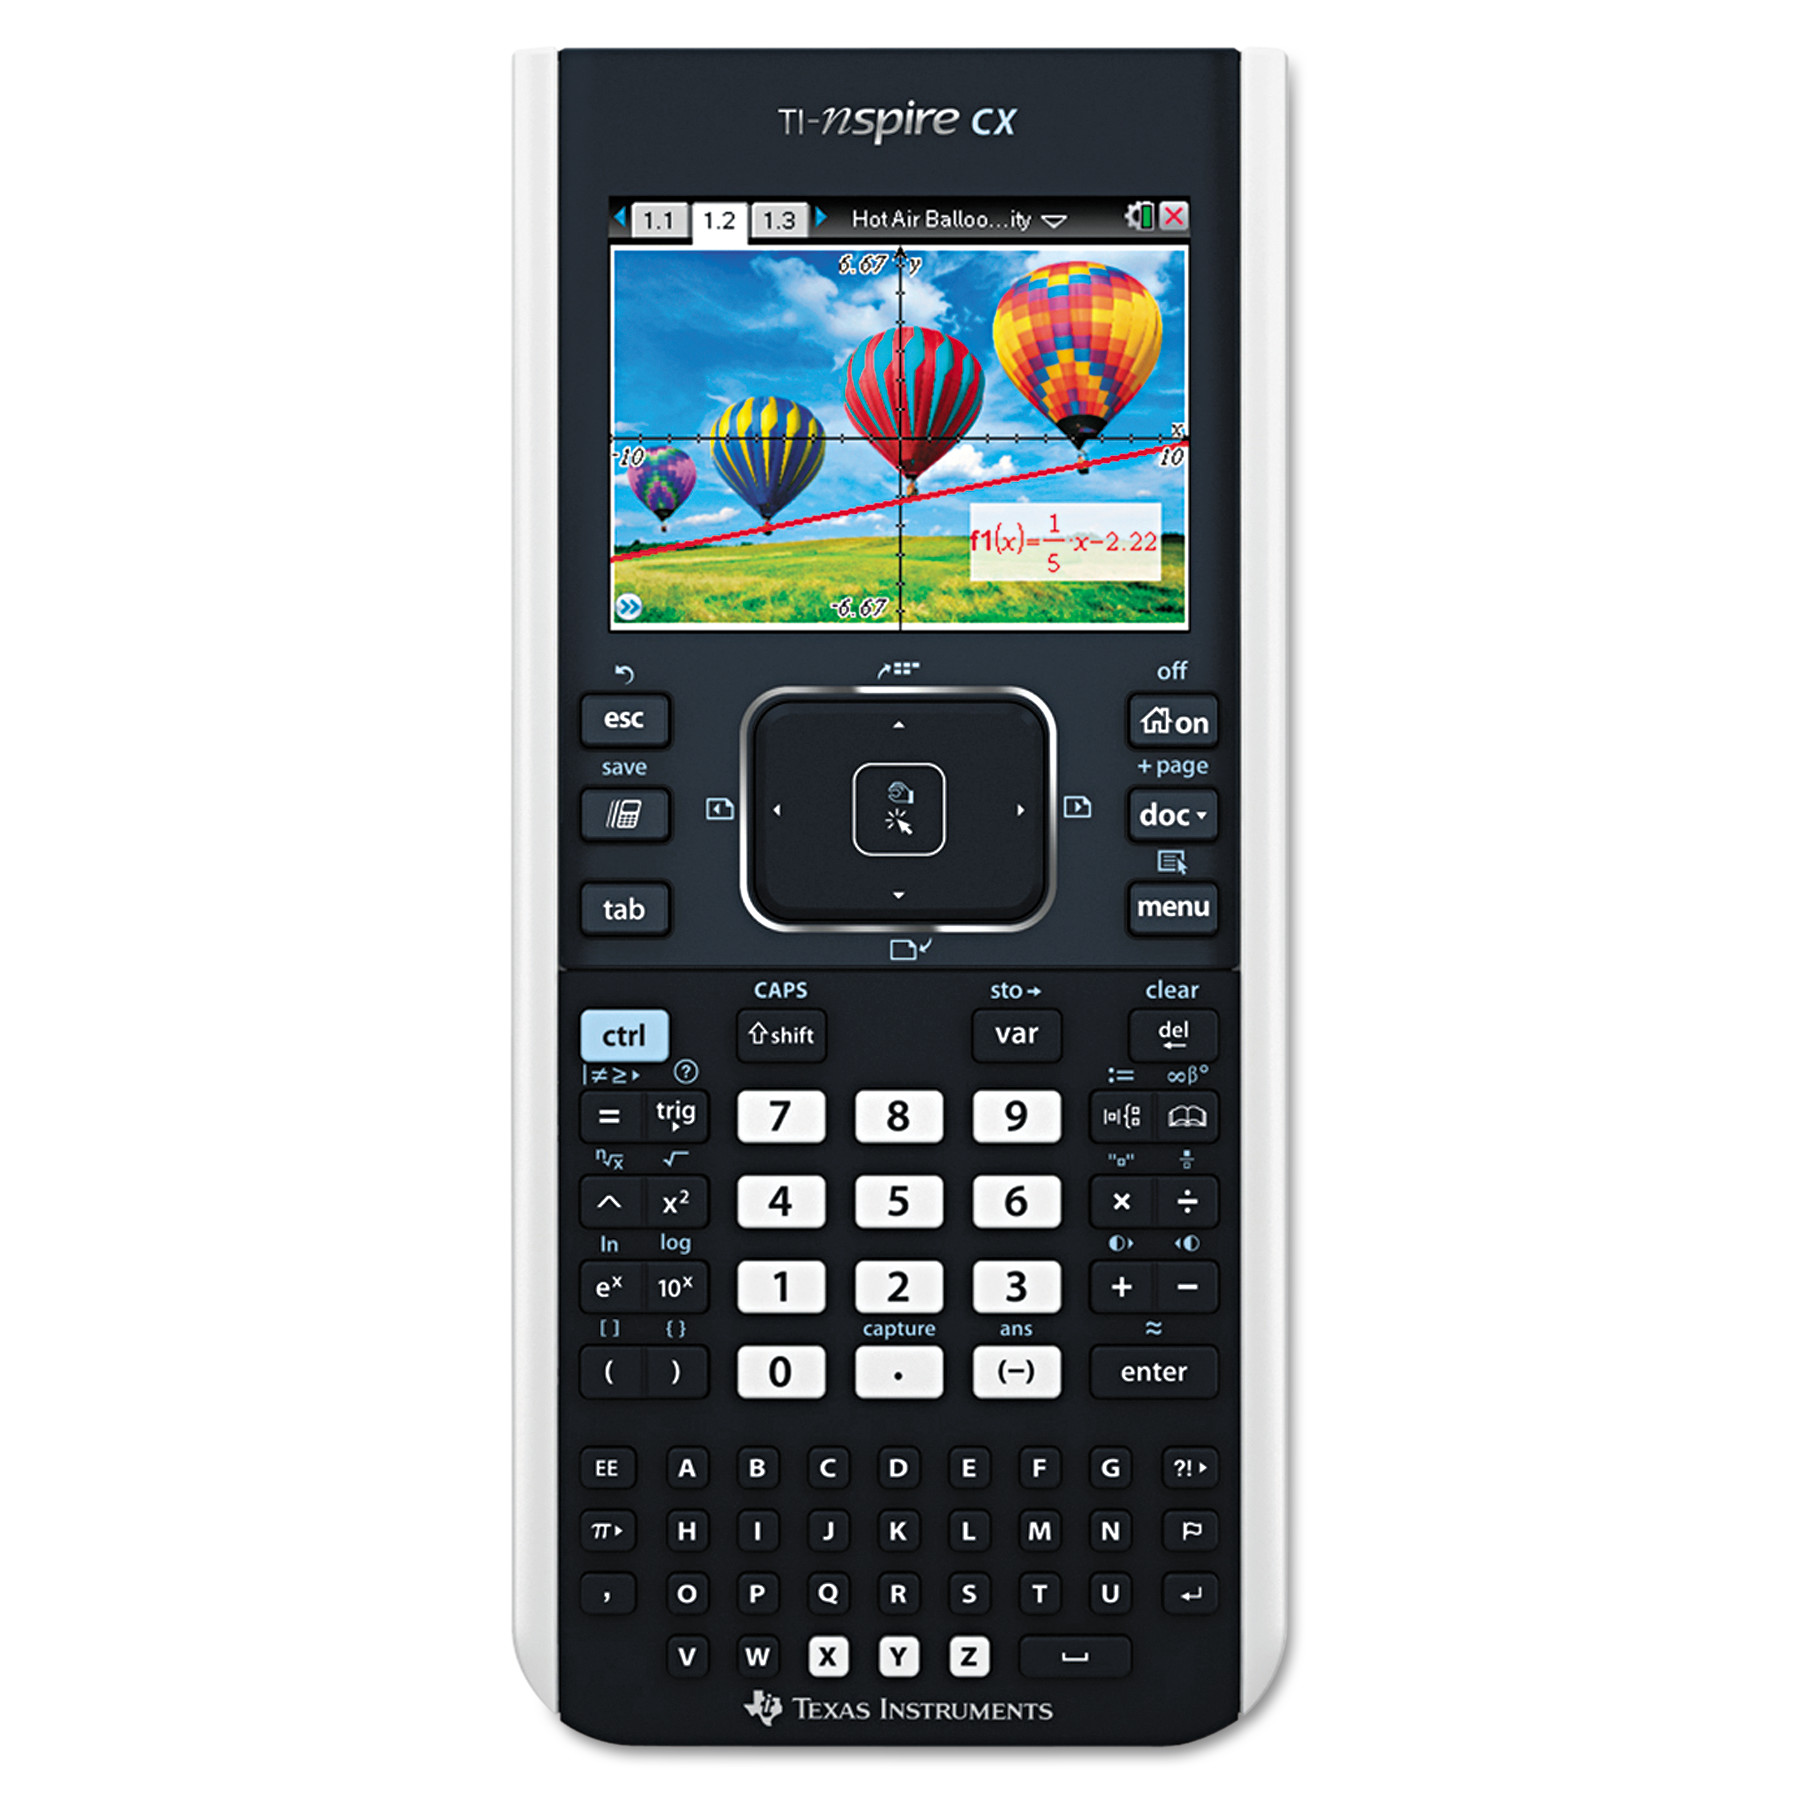 Texas Instruments TI-Nspire CX Handheld Graphing Calculator with Full-Color Display by Texas Instruments